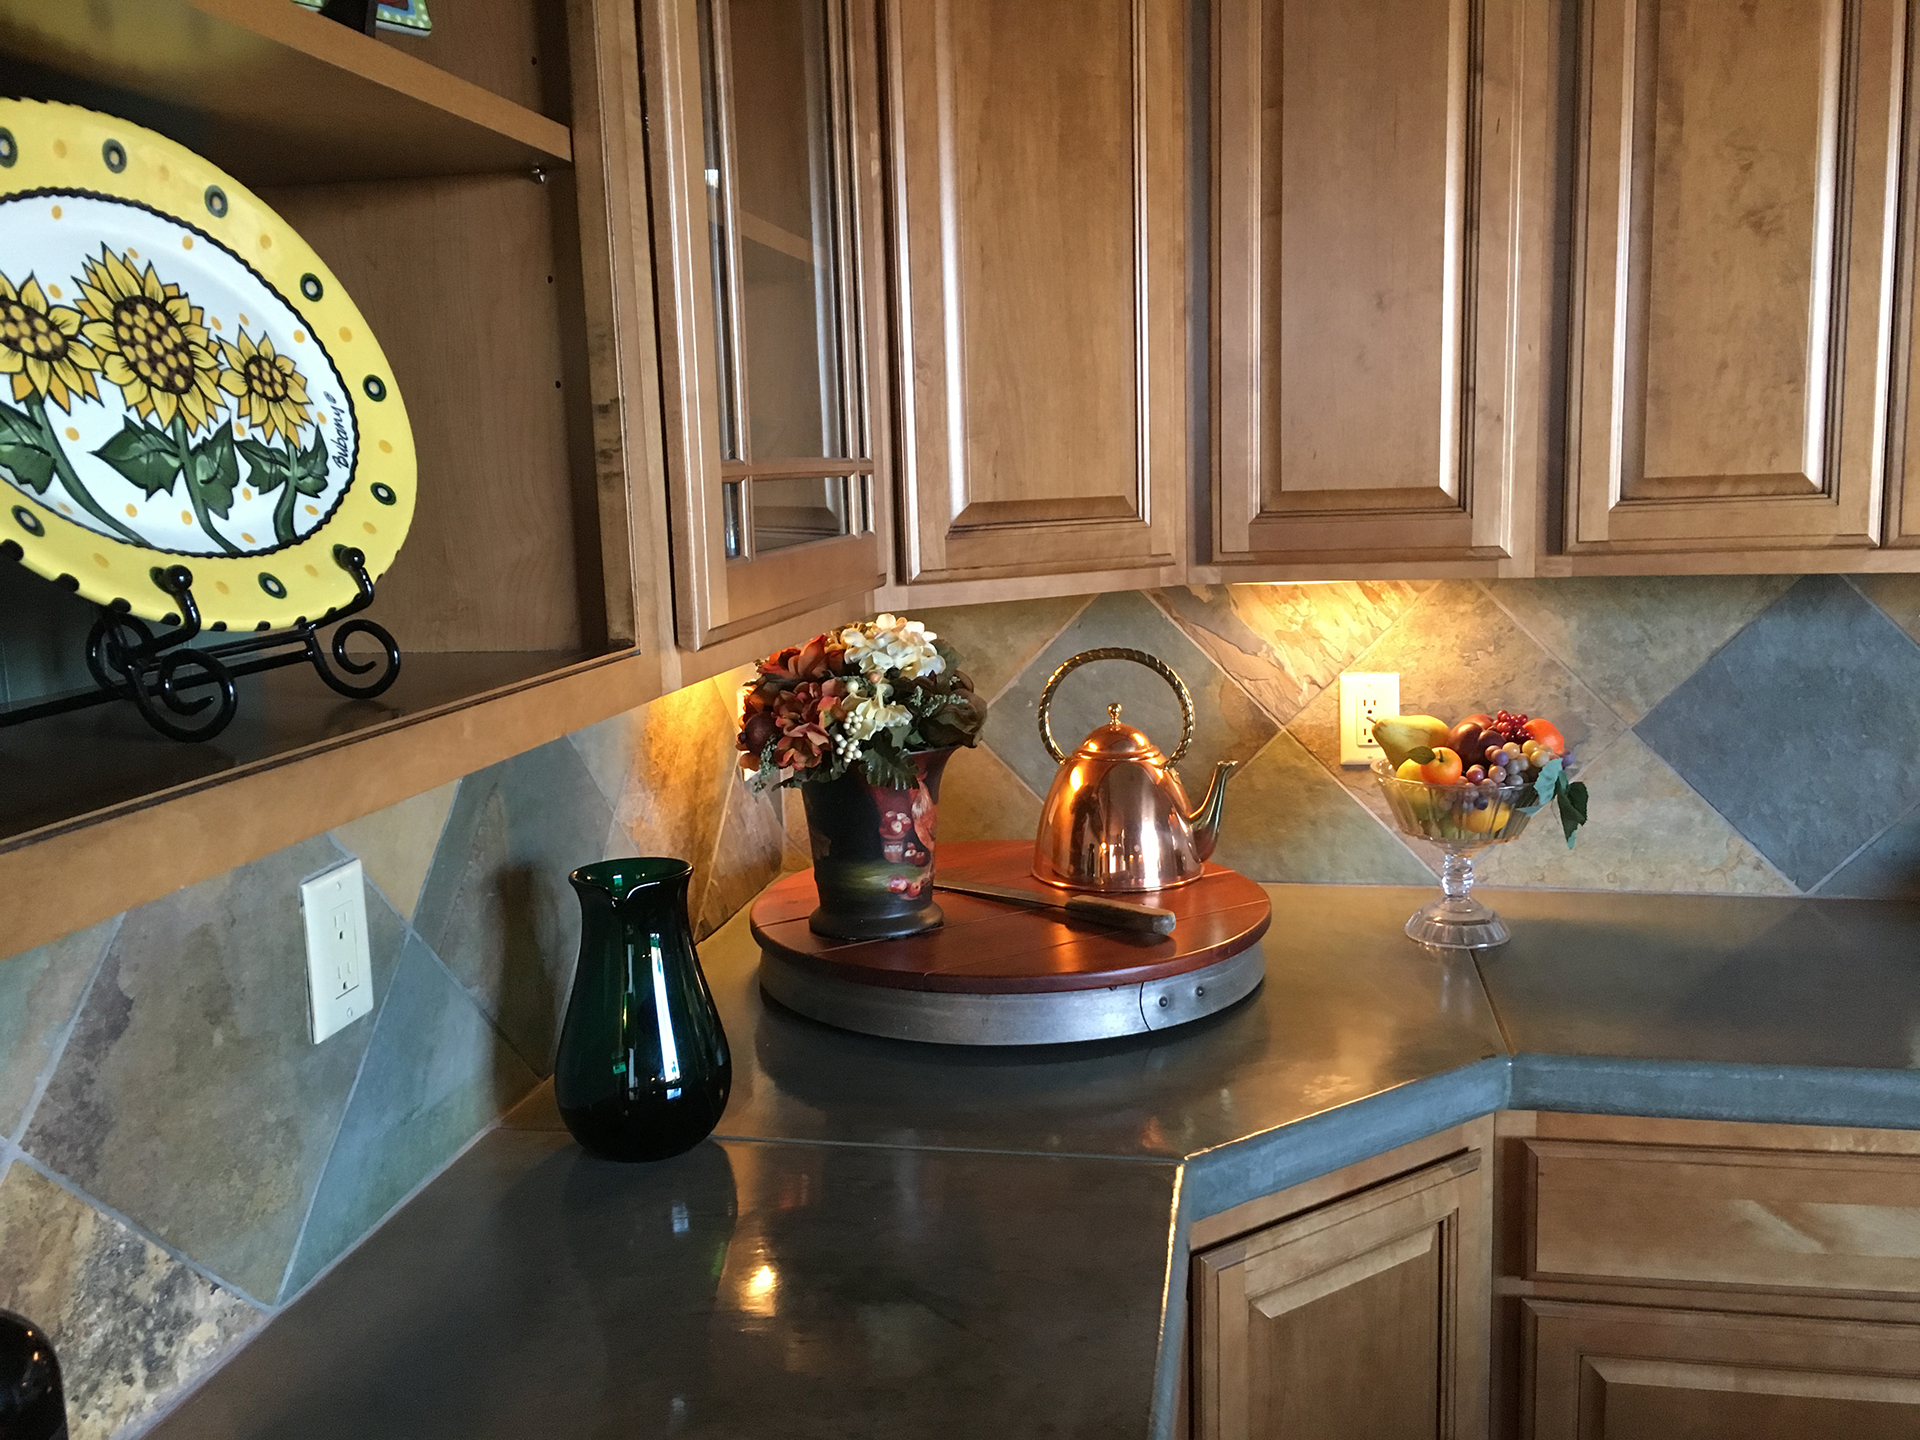 A New And Inexpensive Trend In Countertops Is Concrete. Itu0027s A Very  Versatile Option, And A Lot Of Concrete Countertop Fabricators Are Now Able  To Imitate ...